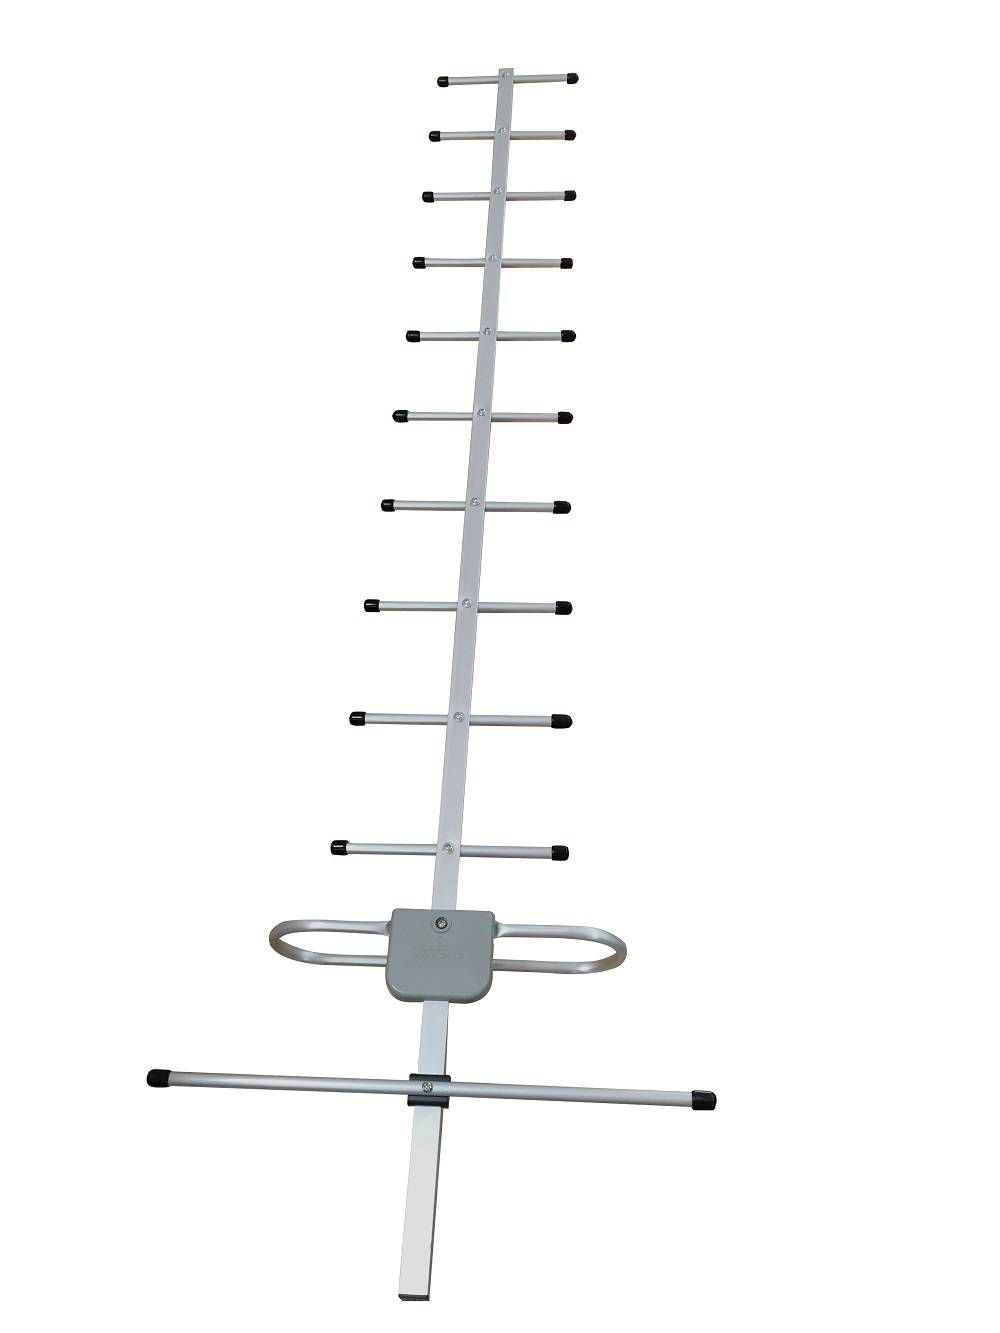 TDT UHF ground wave receiving yagi antenna with 12 units and high gain low VSWR